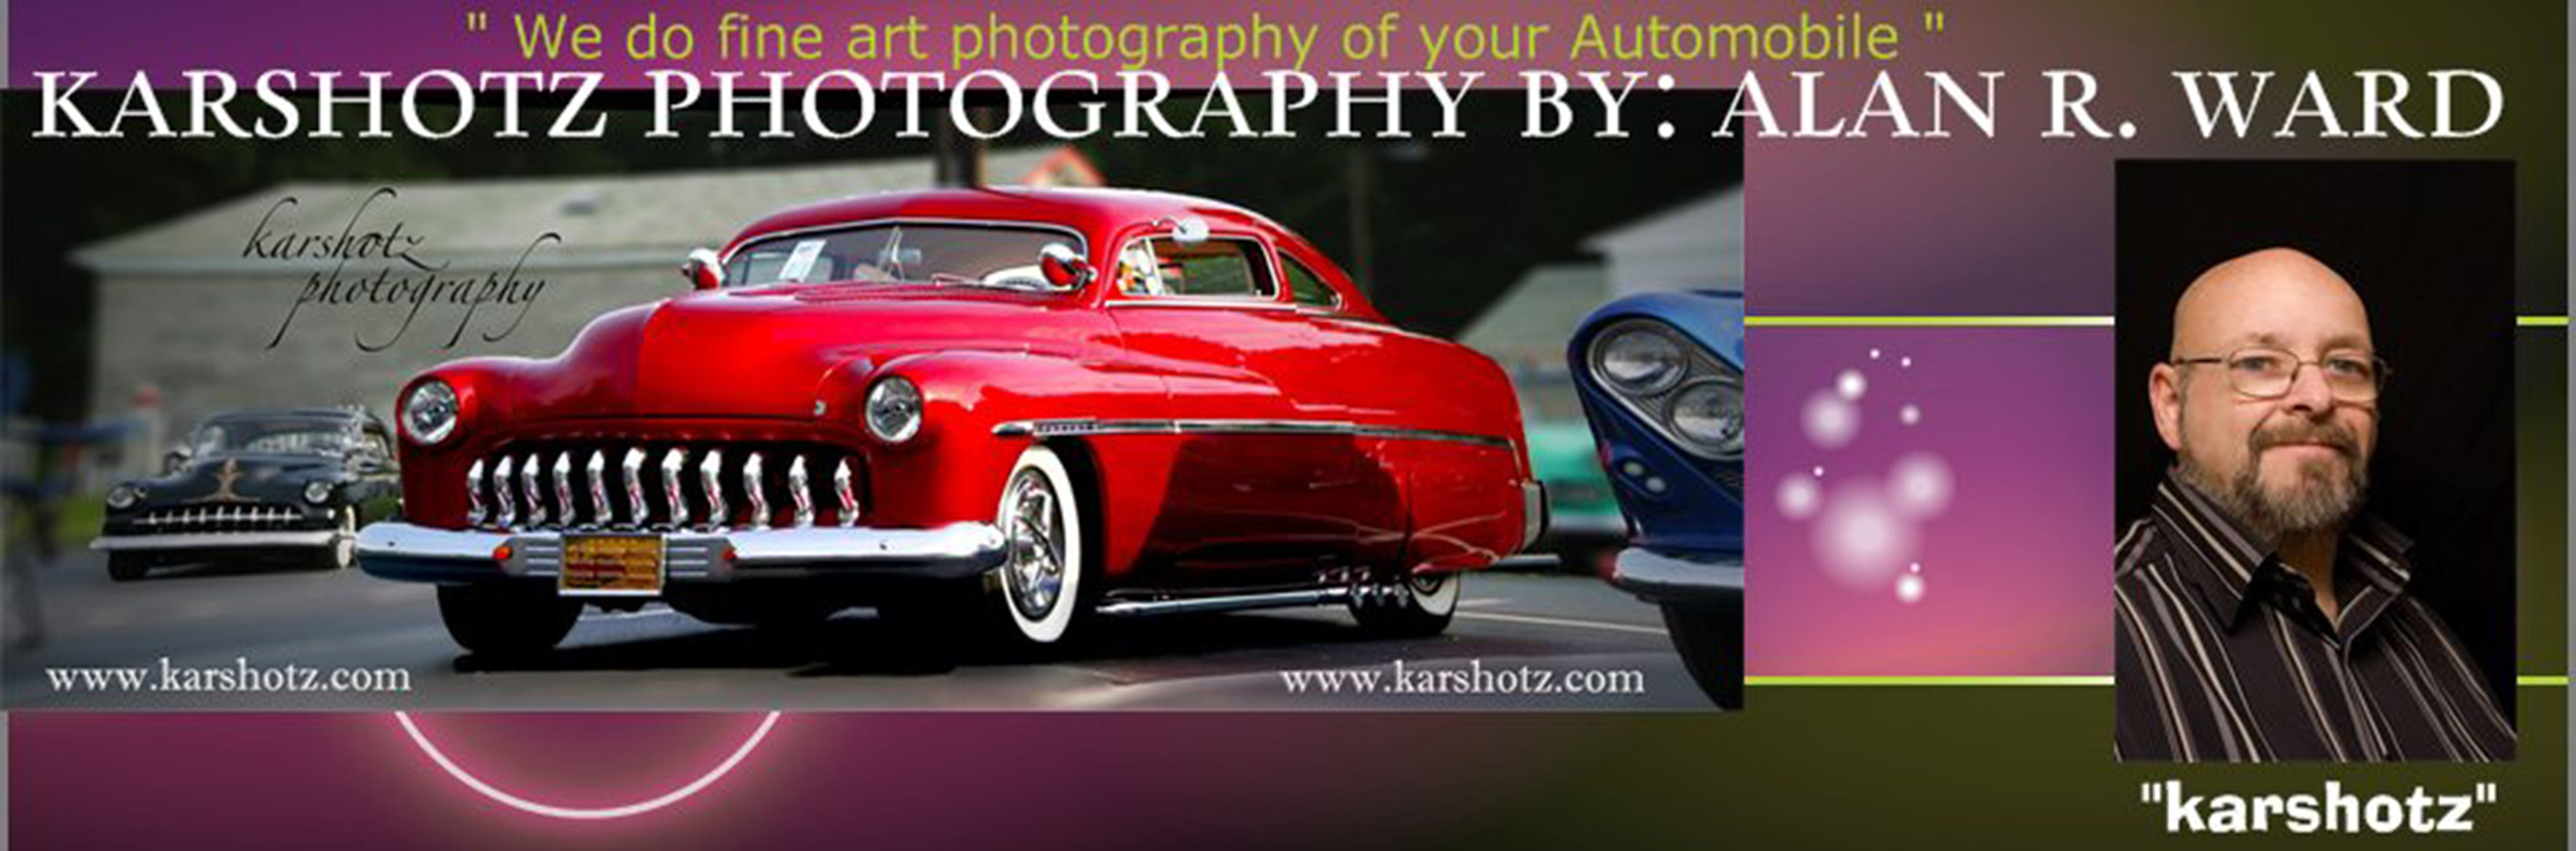 karshotz photography